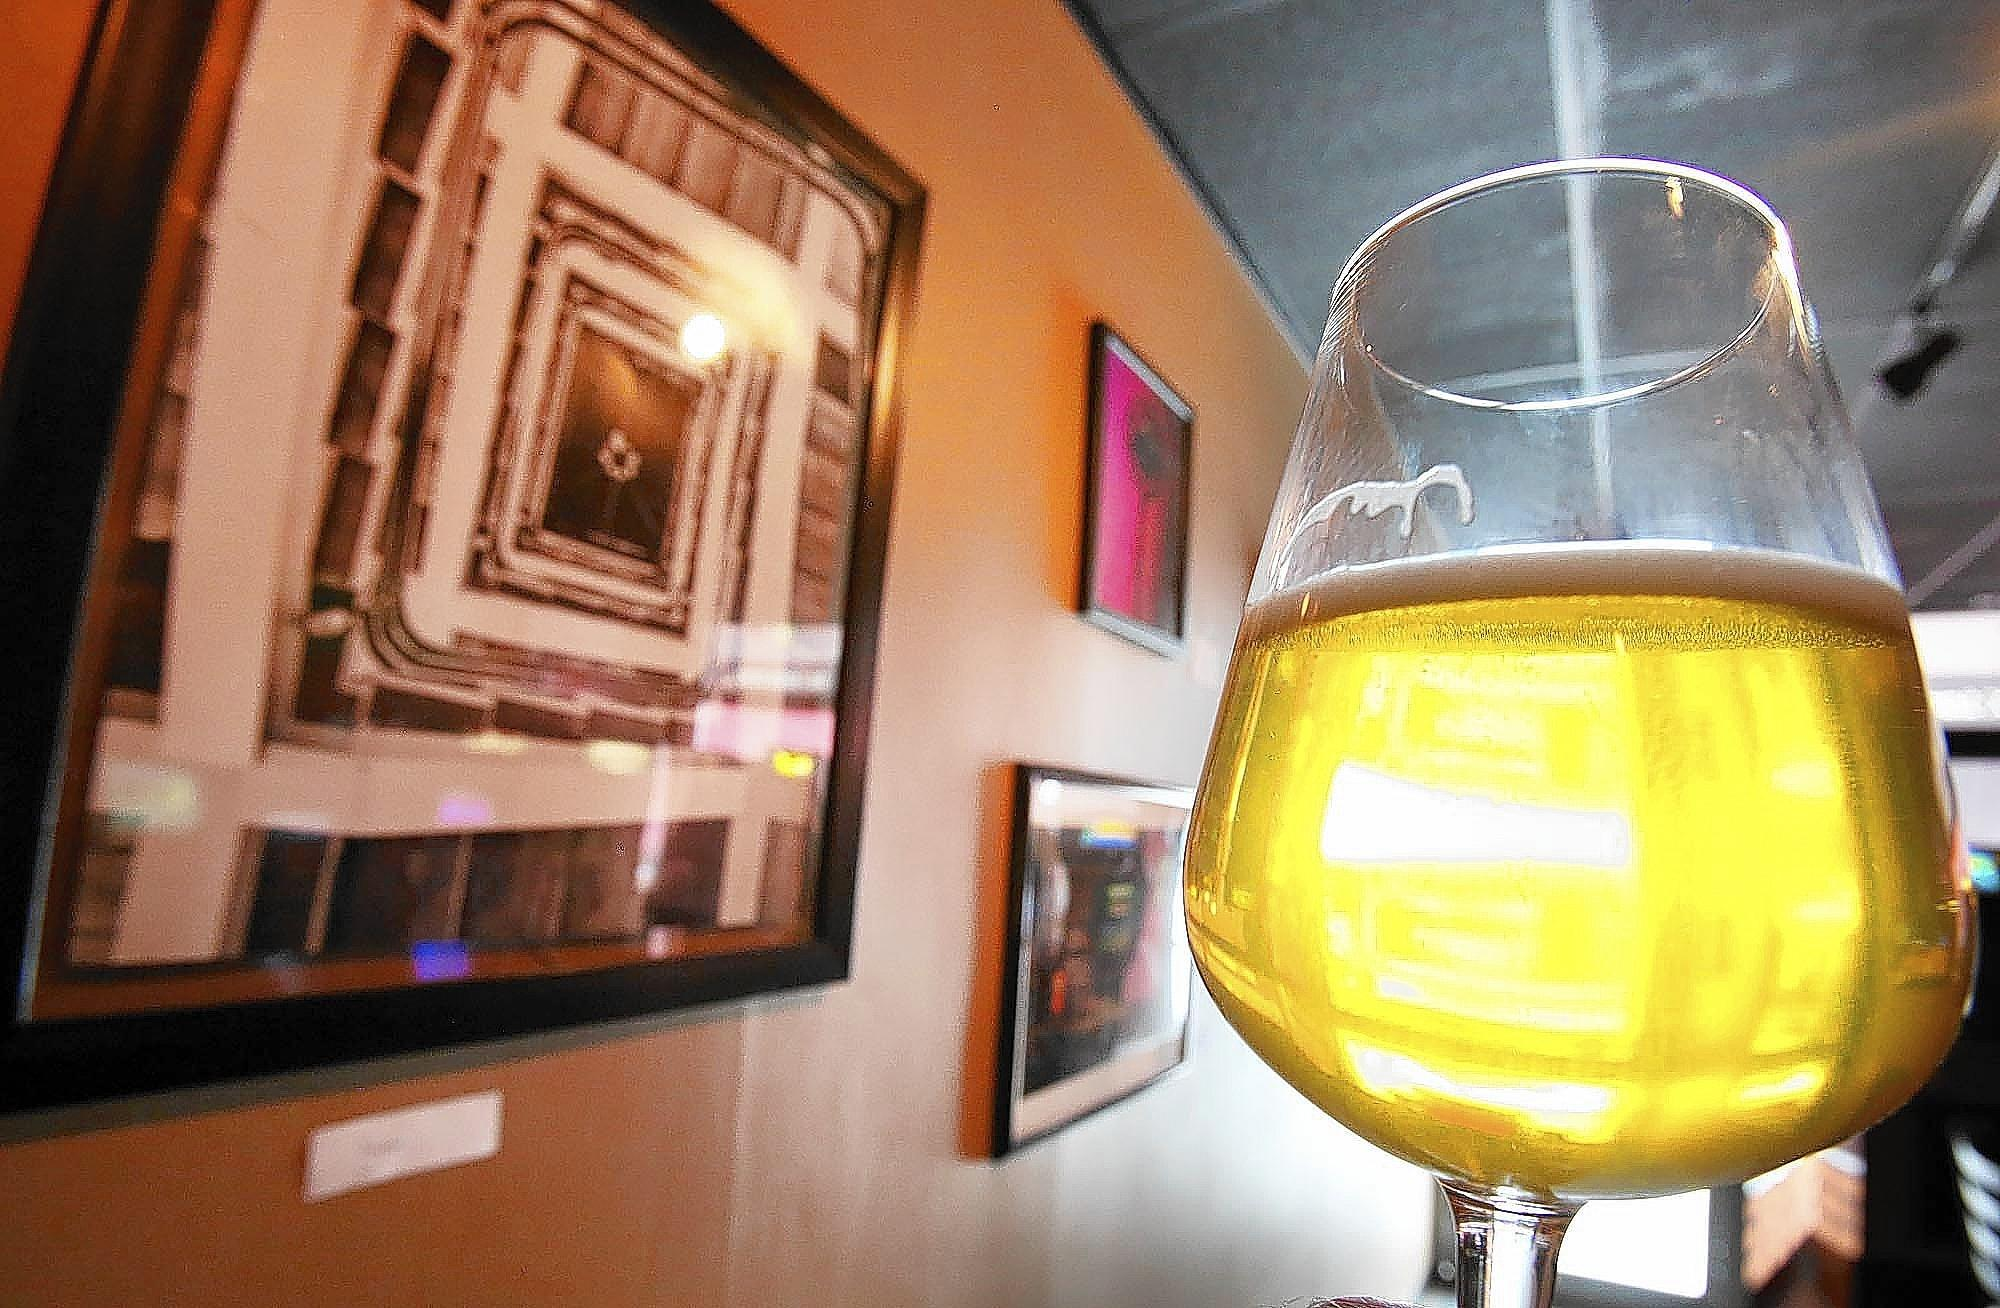 Art is on display at the BART bar in Orlando on Saturday, August 2, 2014.